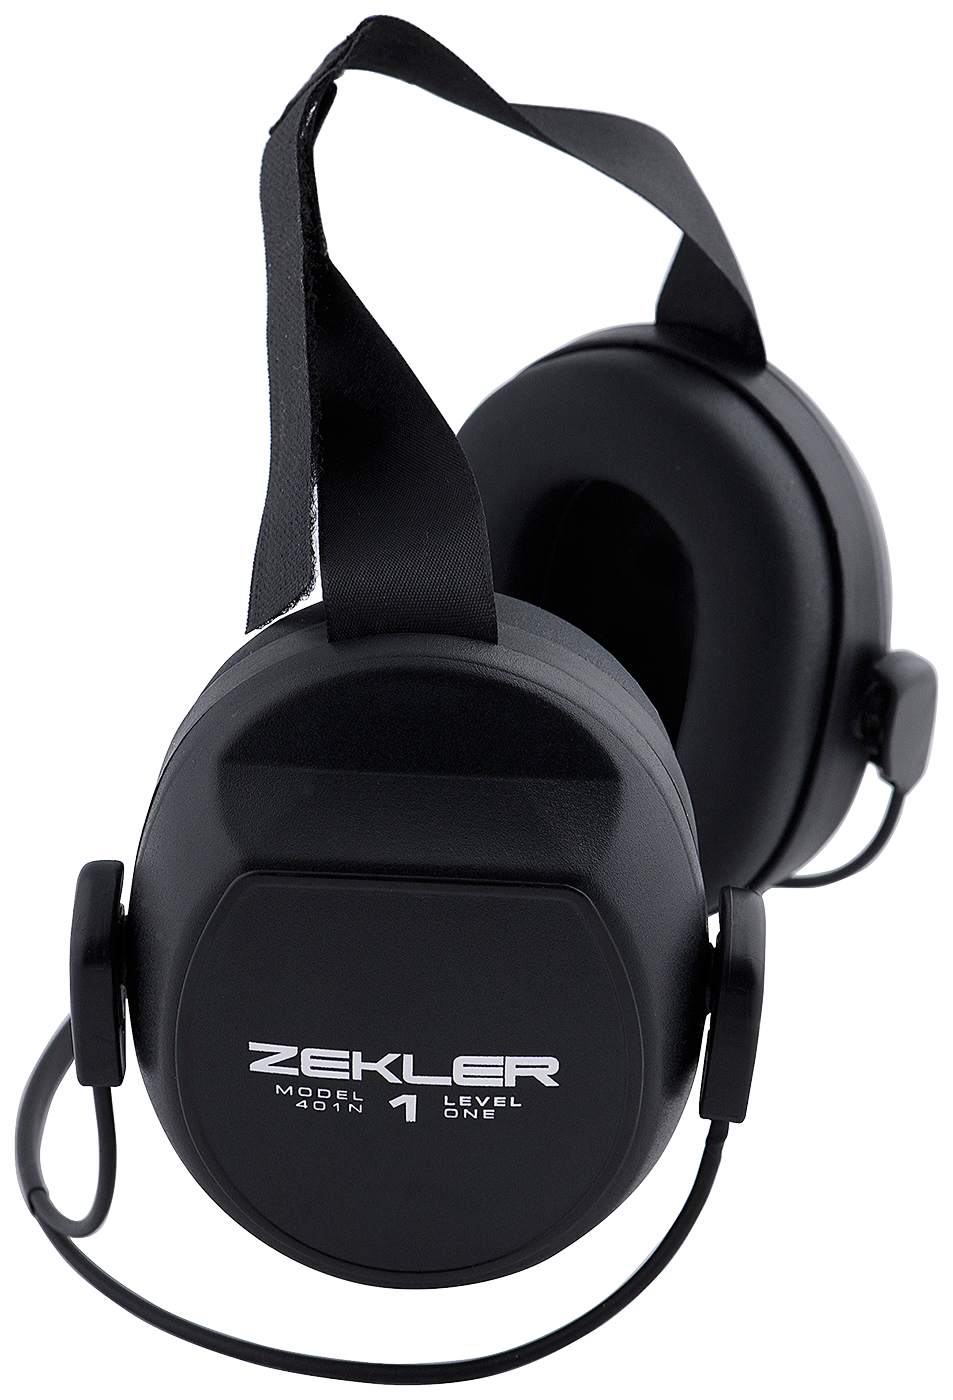 Hearing protection ZEKLER 401N